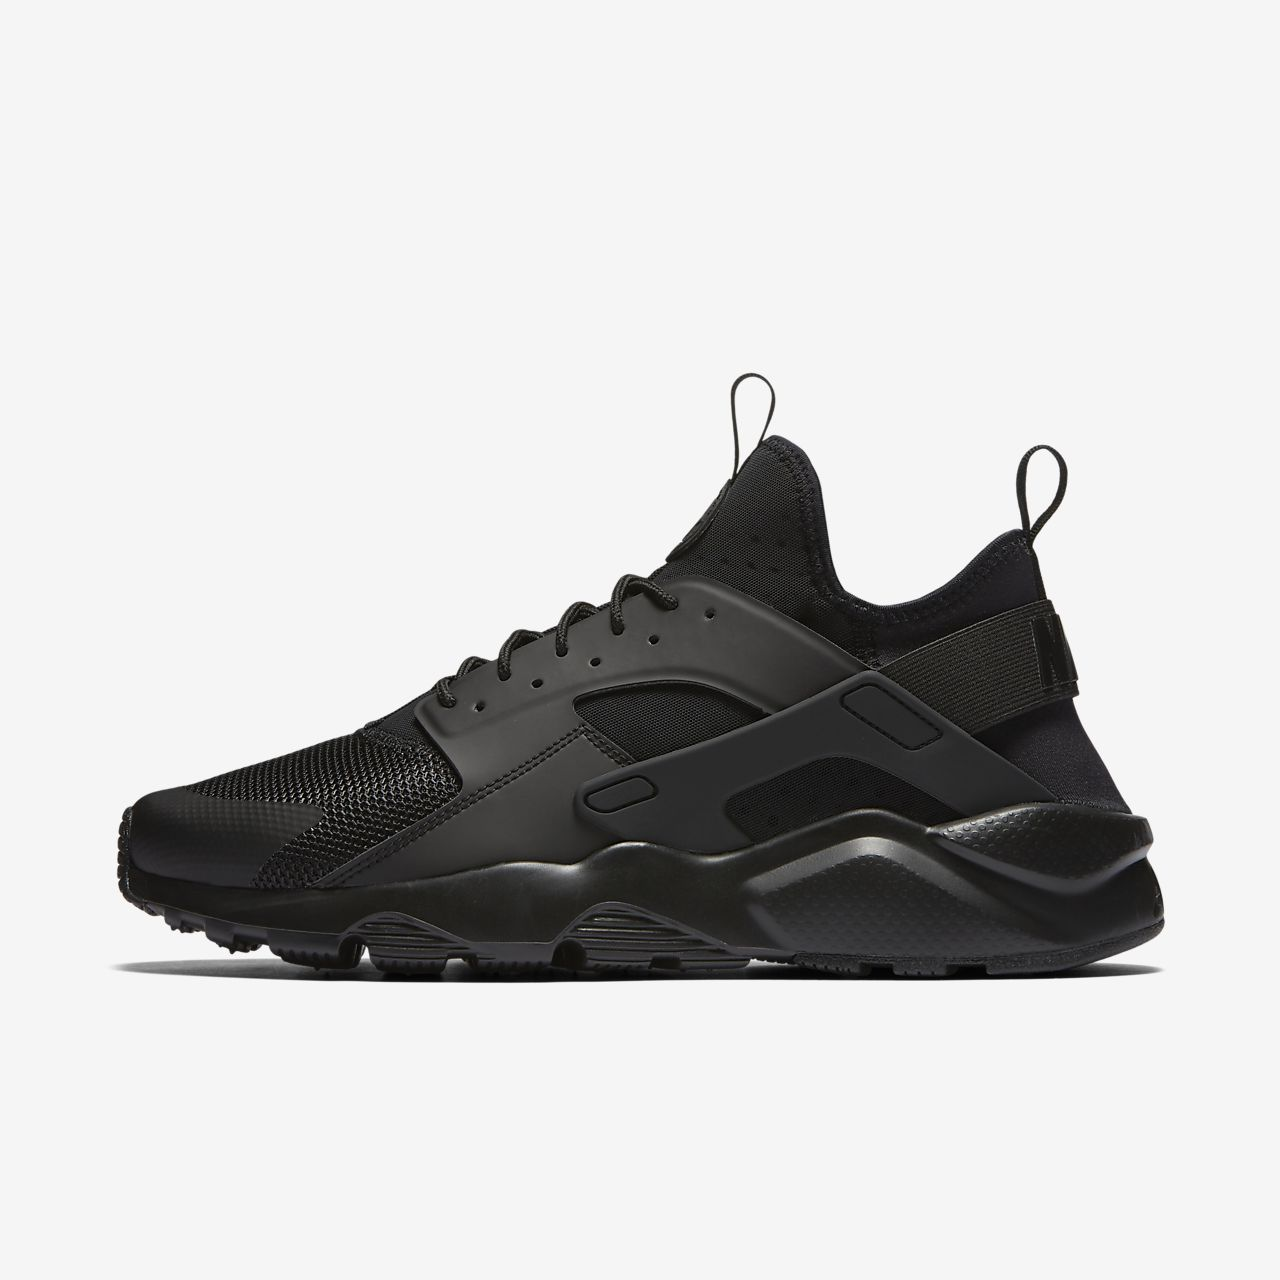 4ae3e5c4946a Nike Air Huarache Ultra Men s Shoe. Nike.com AT